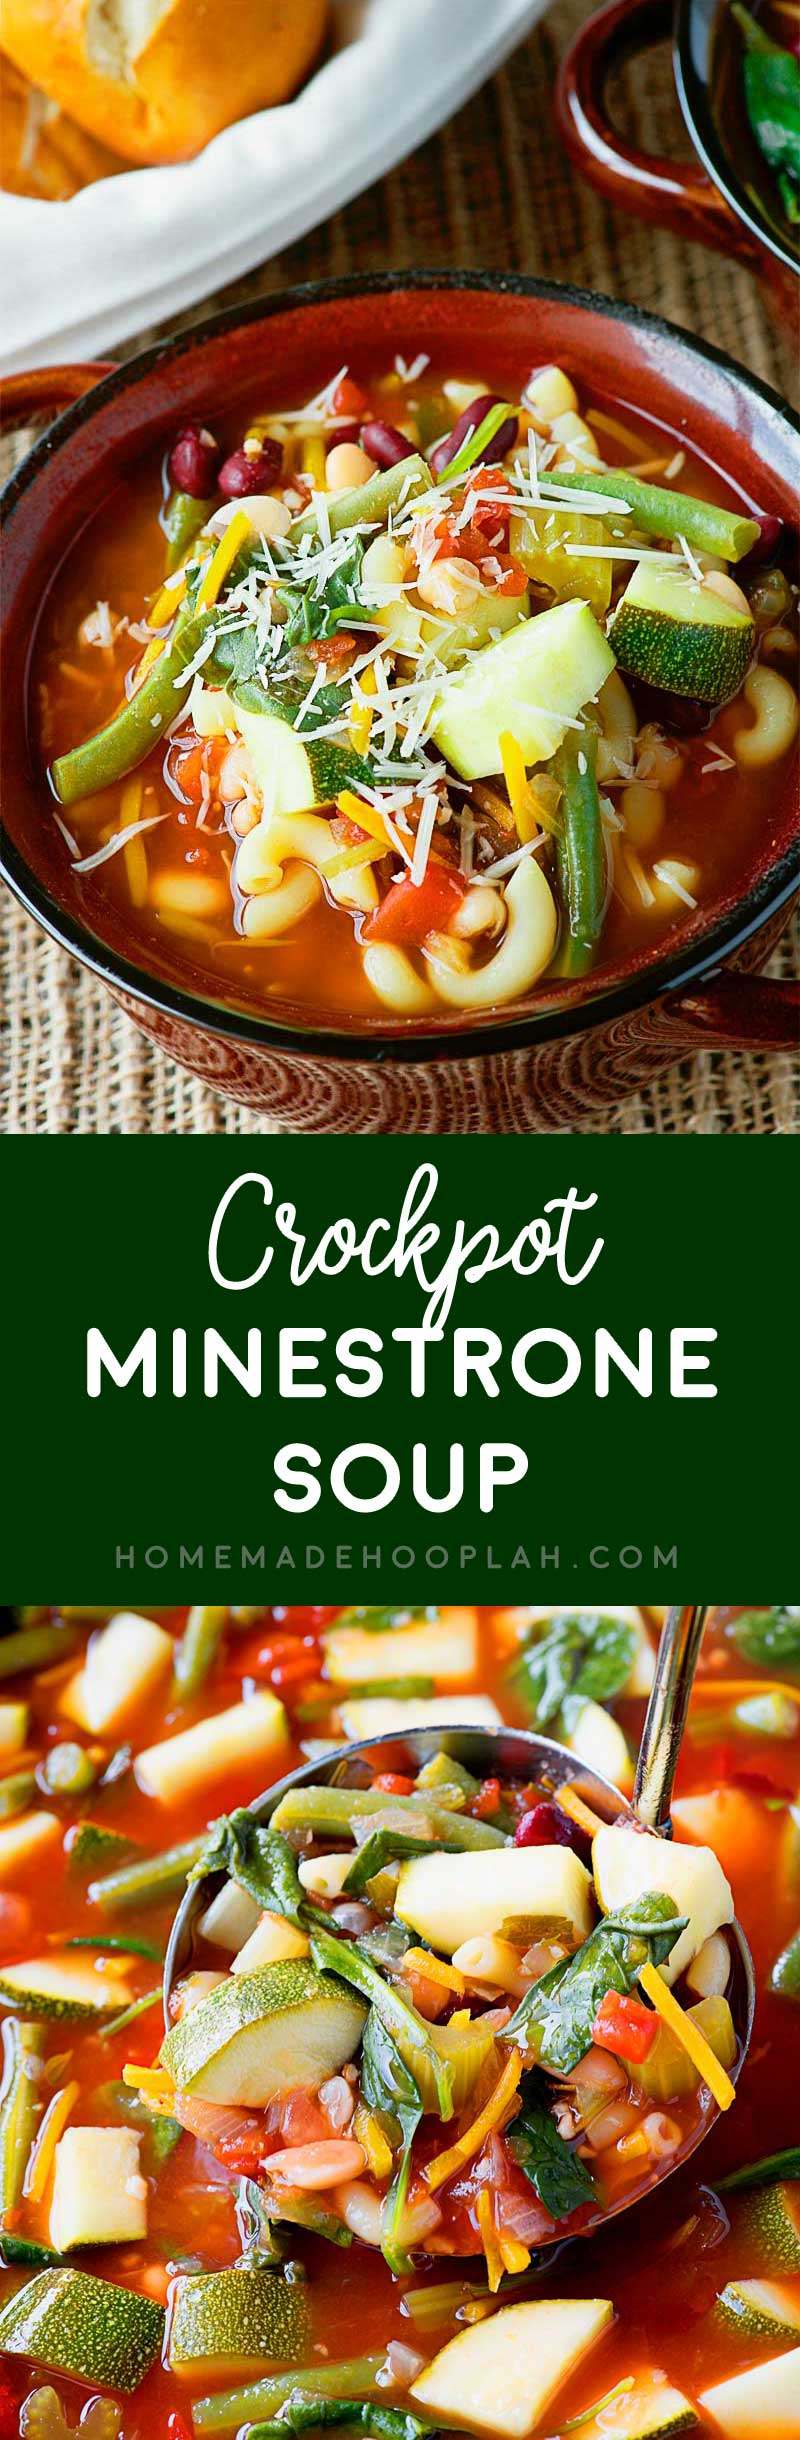 Crock Pot Minestrone Soup! An easy to make and hearty meatless soup with a melody of herbs and fresh produce that's slow cooked in your crock pot. It freezes well, too! | HomemadeHooplah.com